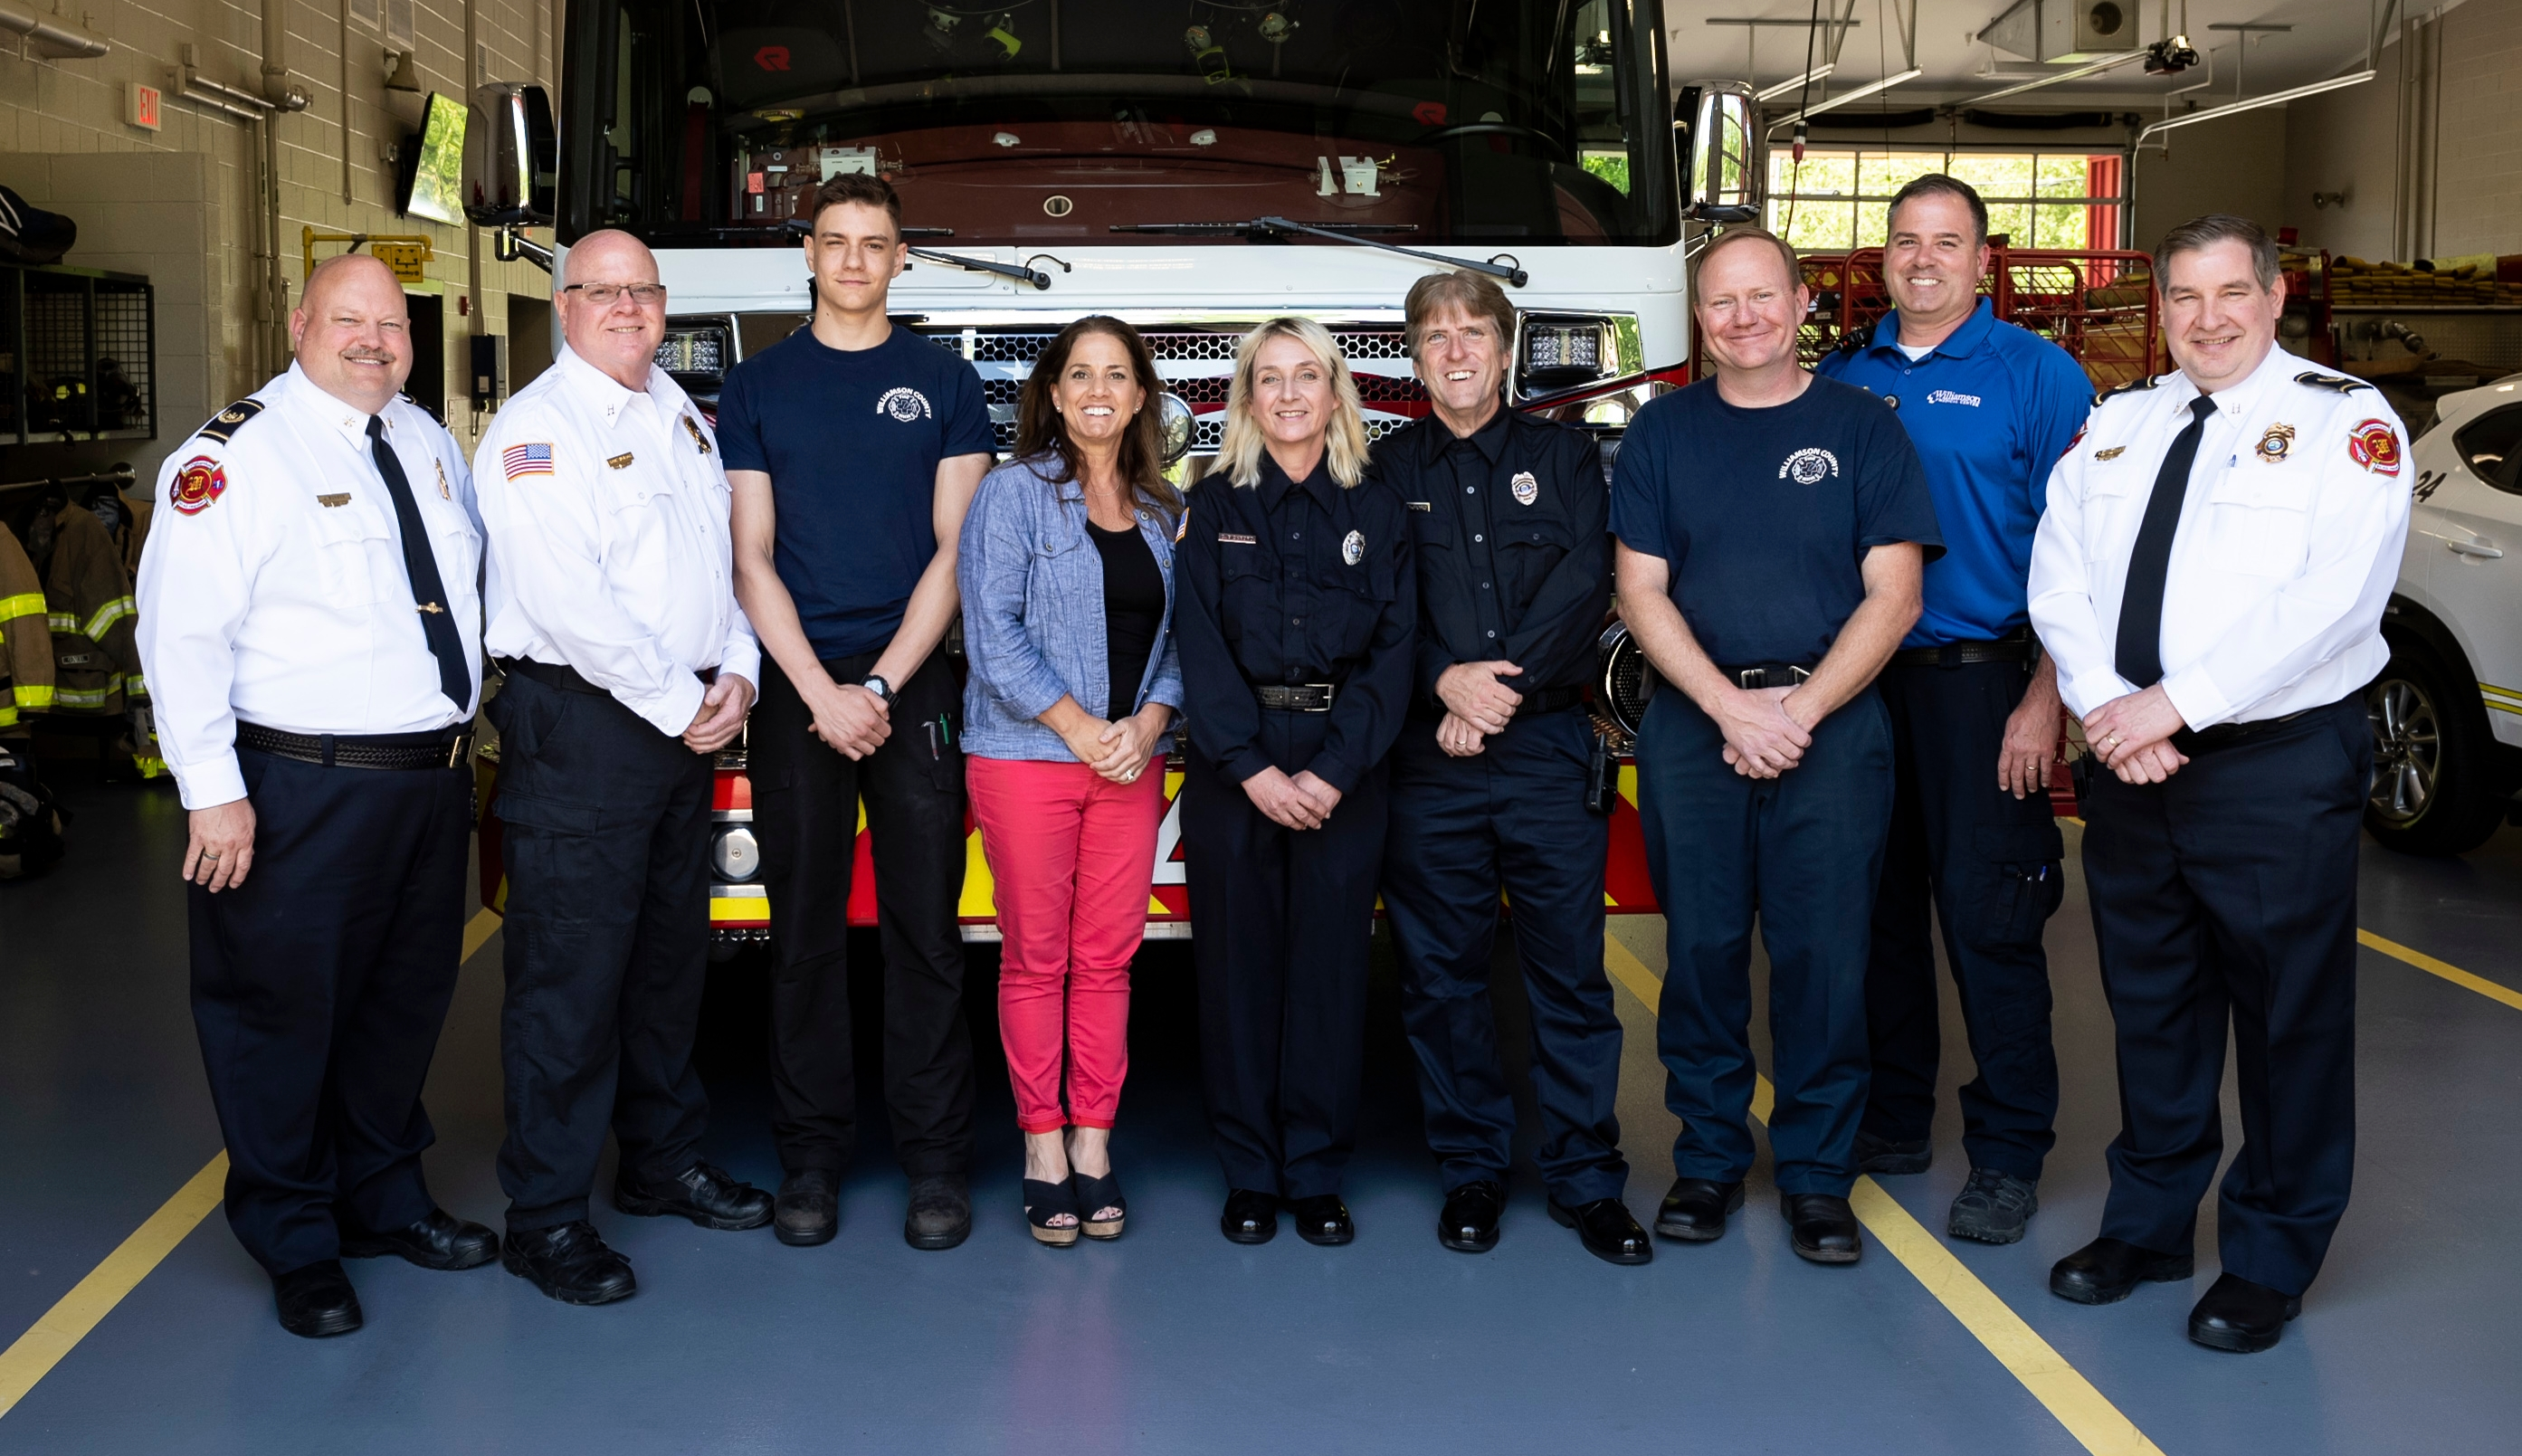 Members from Williamson County Fire/Rescue Station 24